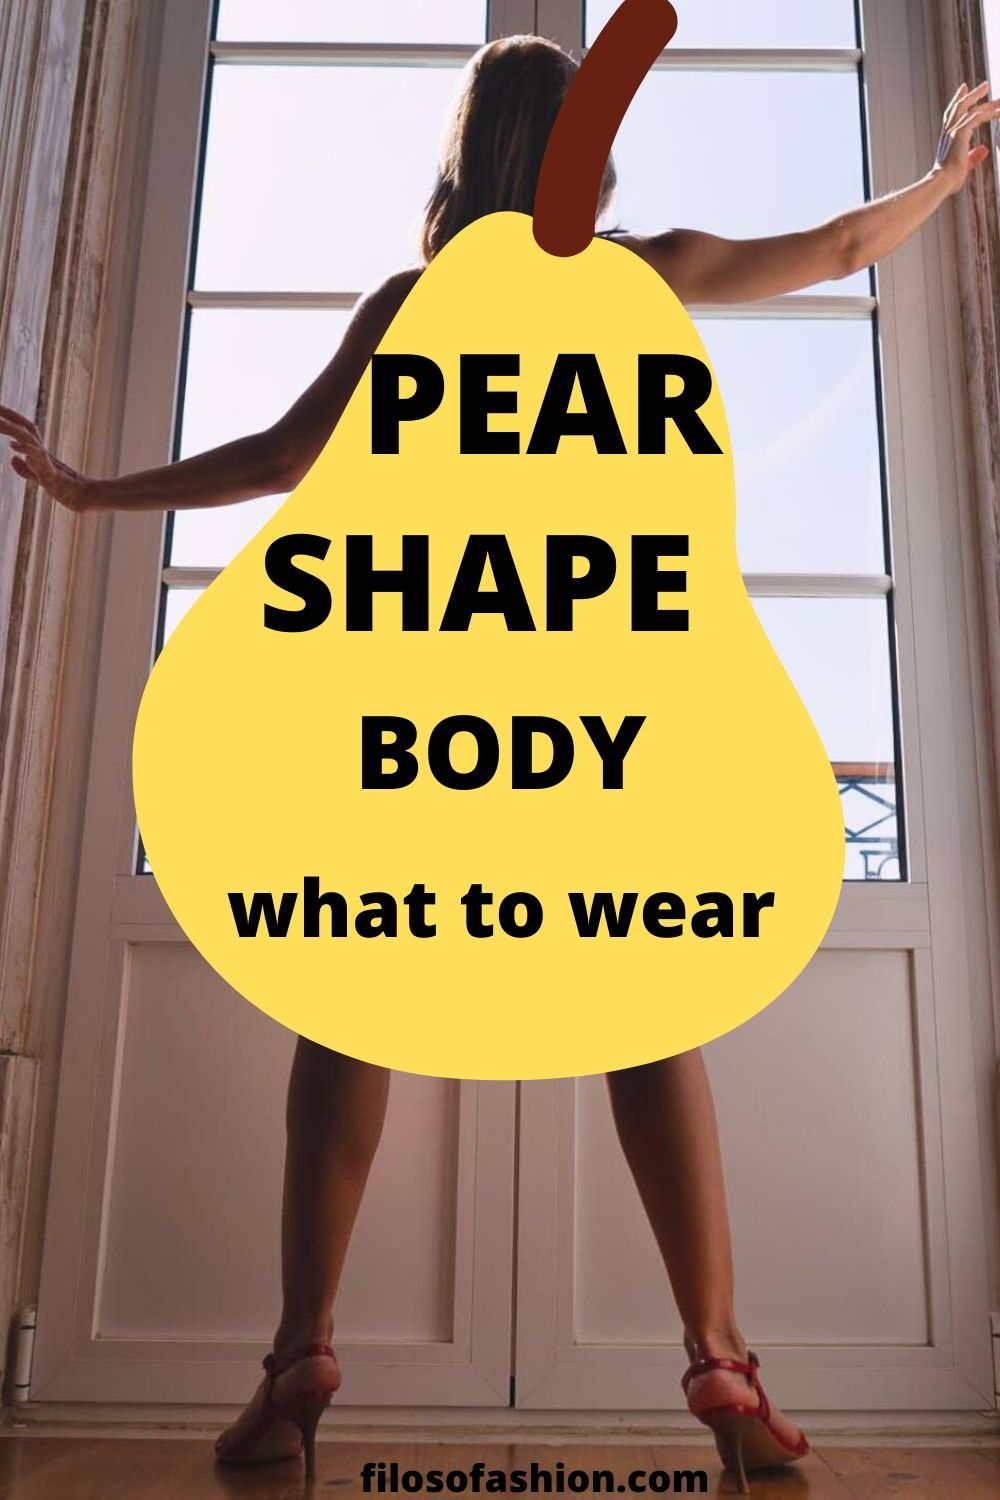 how to dress for a pear shape body